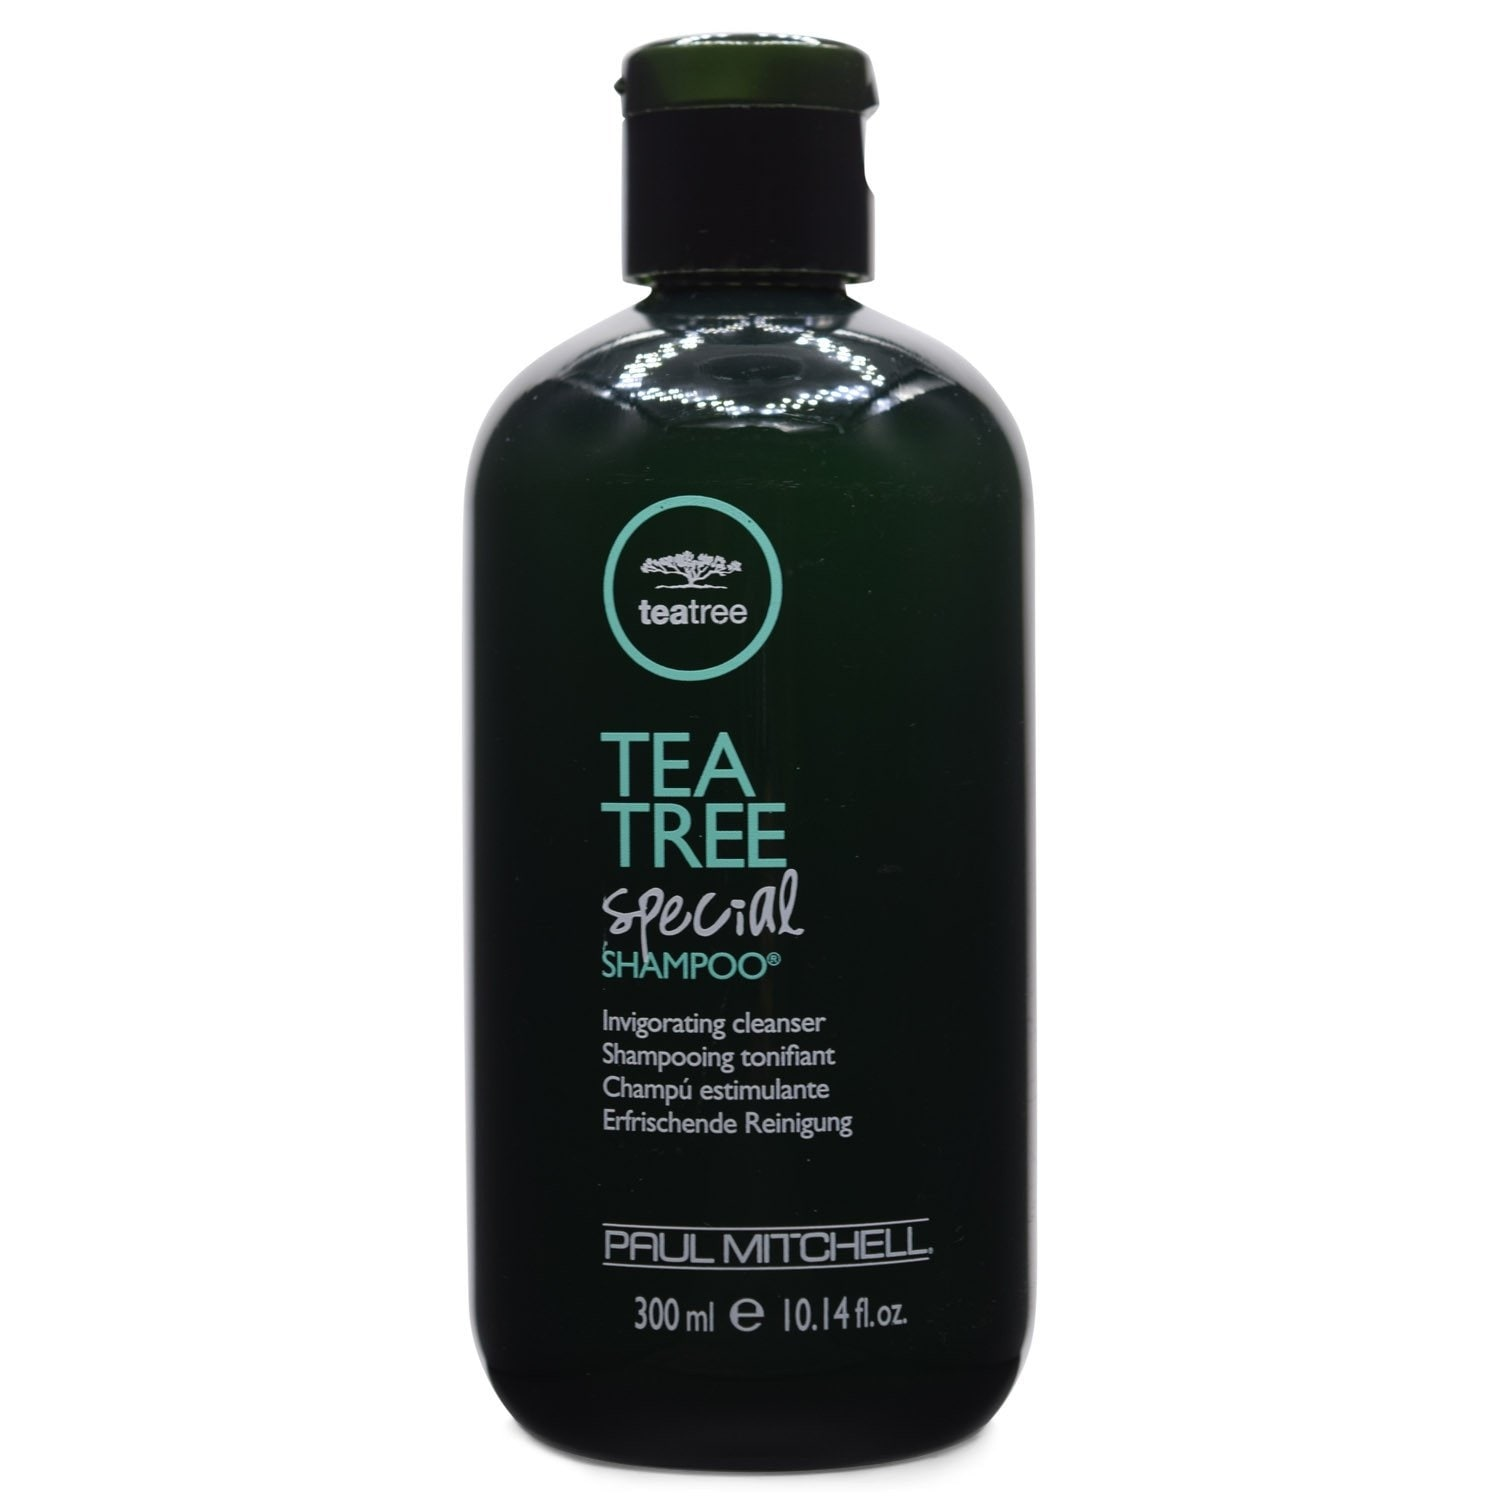 9b7adb58aa5 Shop Paul Mitchell Tea Tree Special Shampoo 10.14 fl Oz - Free Shipping On  Orders Over  45 - Overstock - 16994748